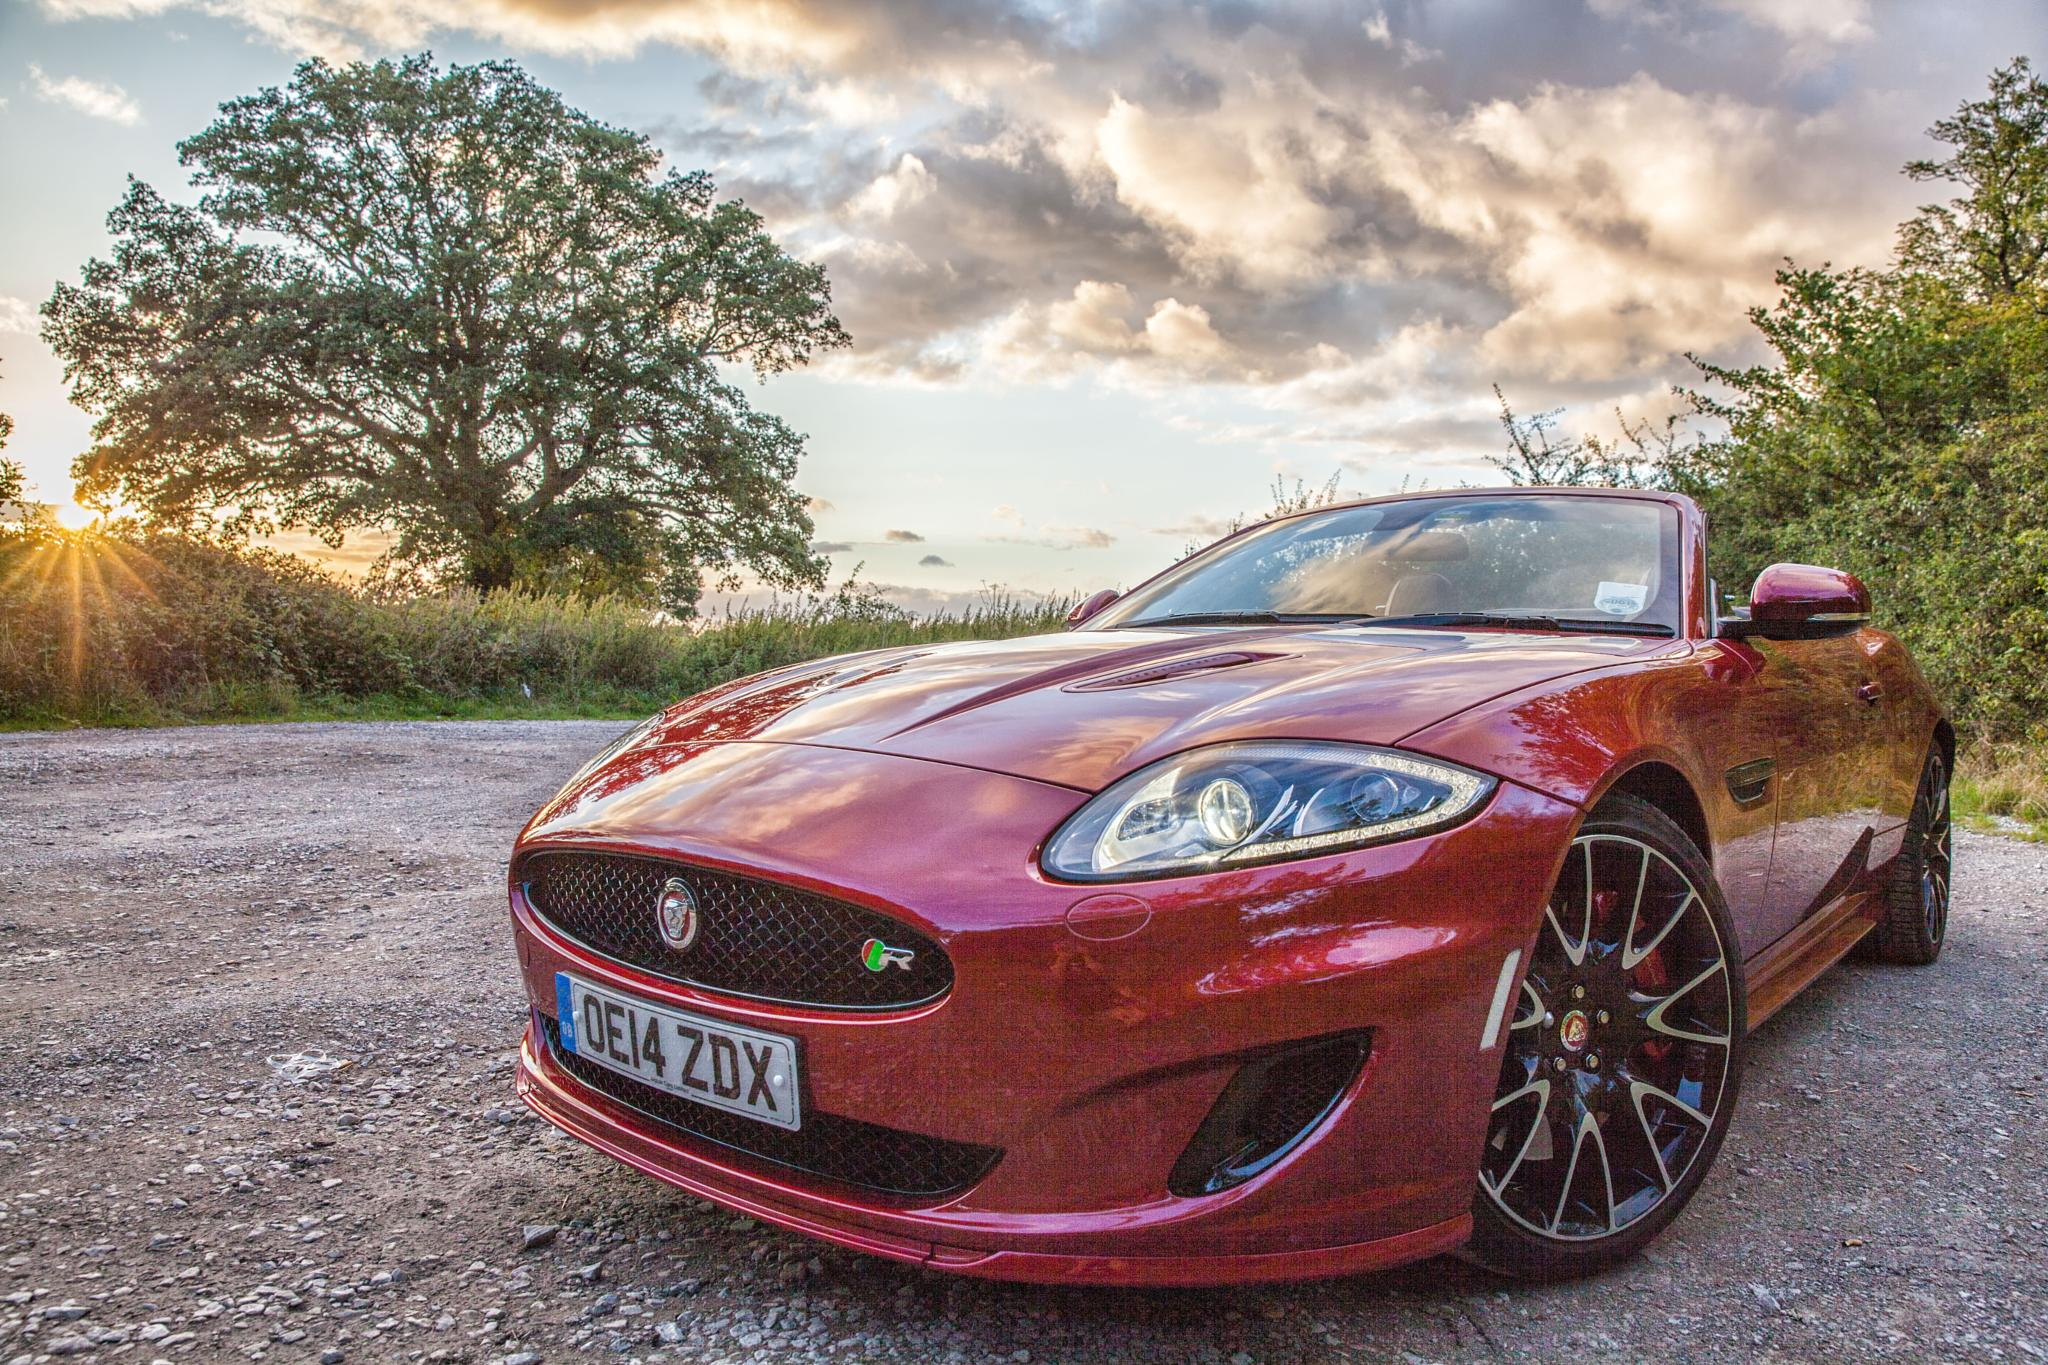 XKR sunset by Phil